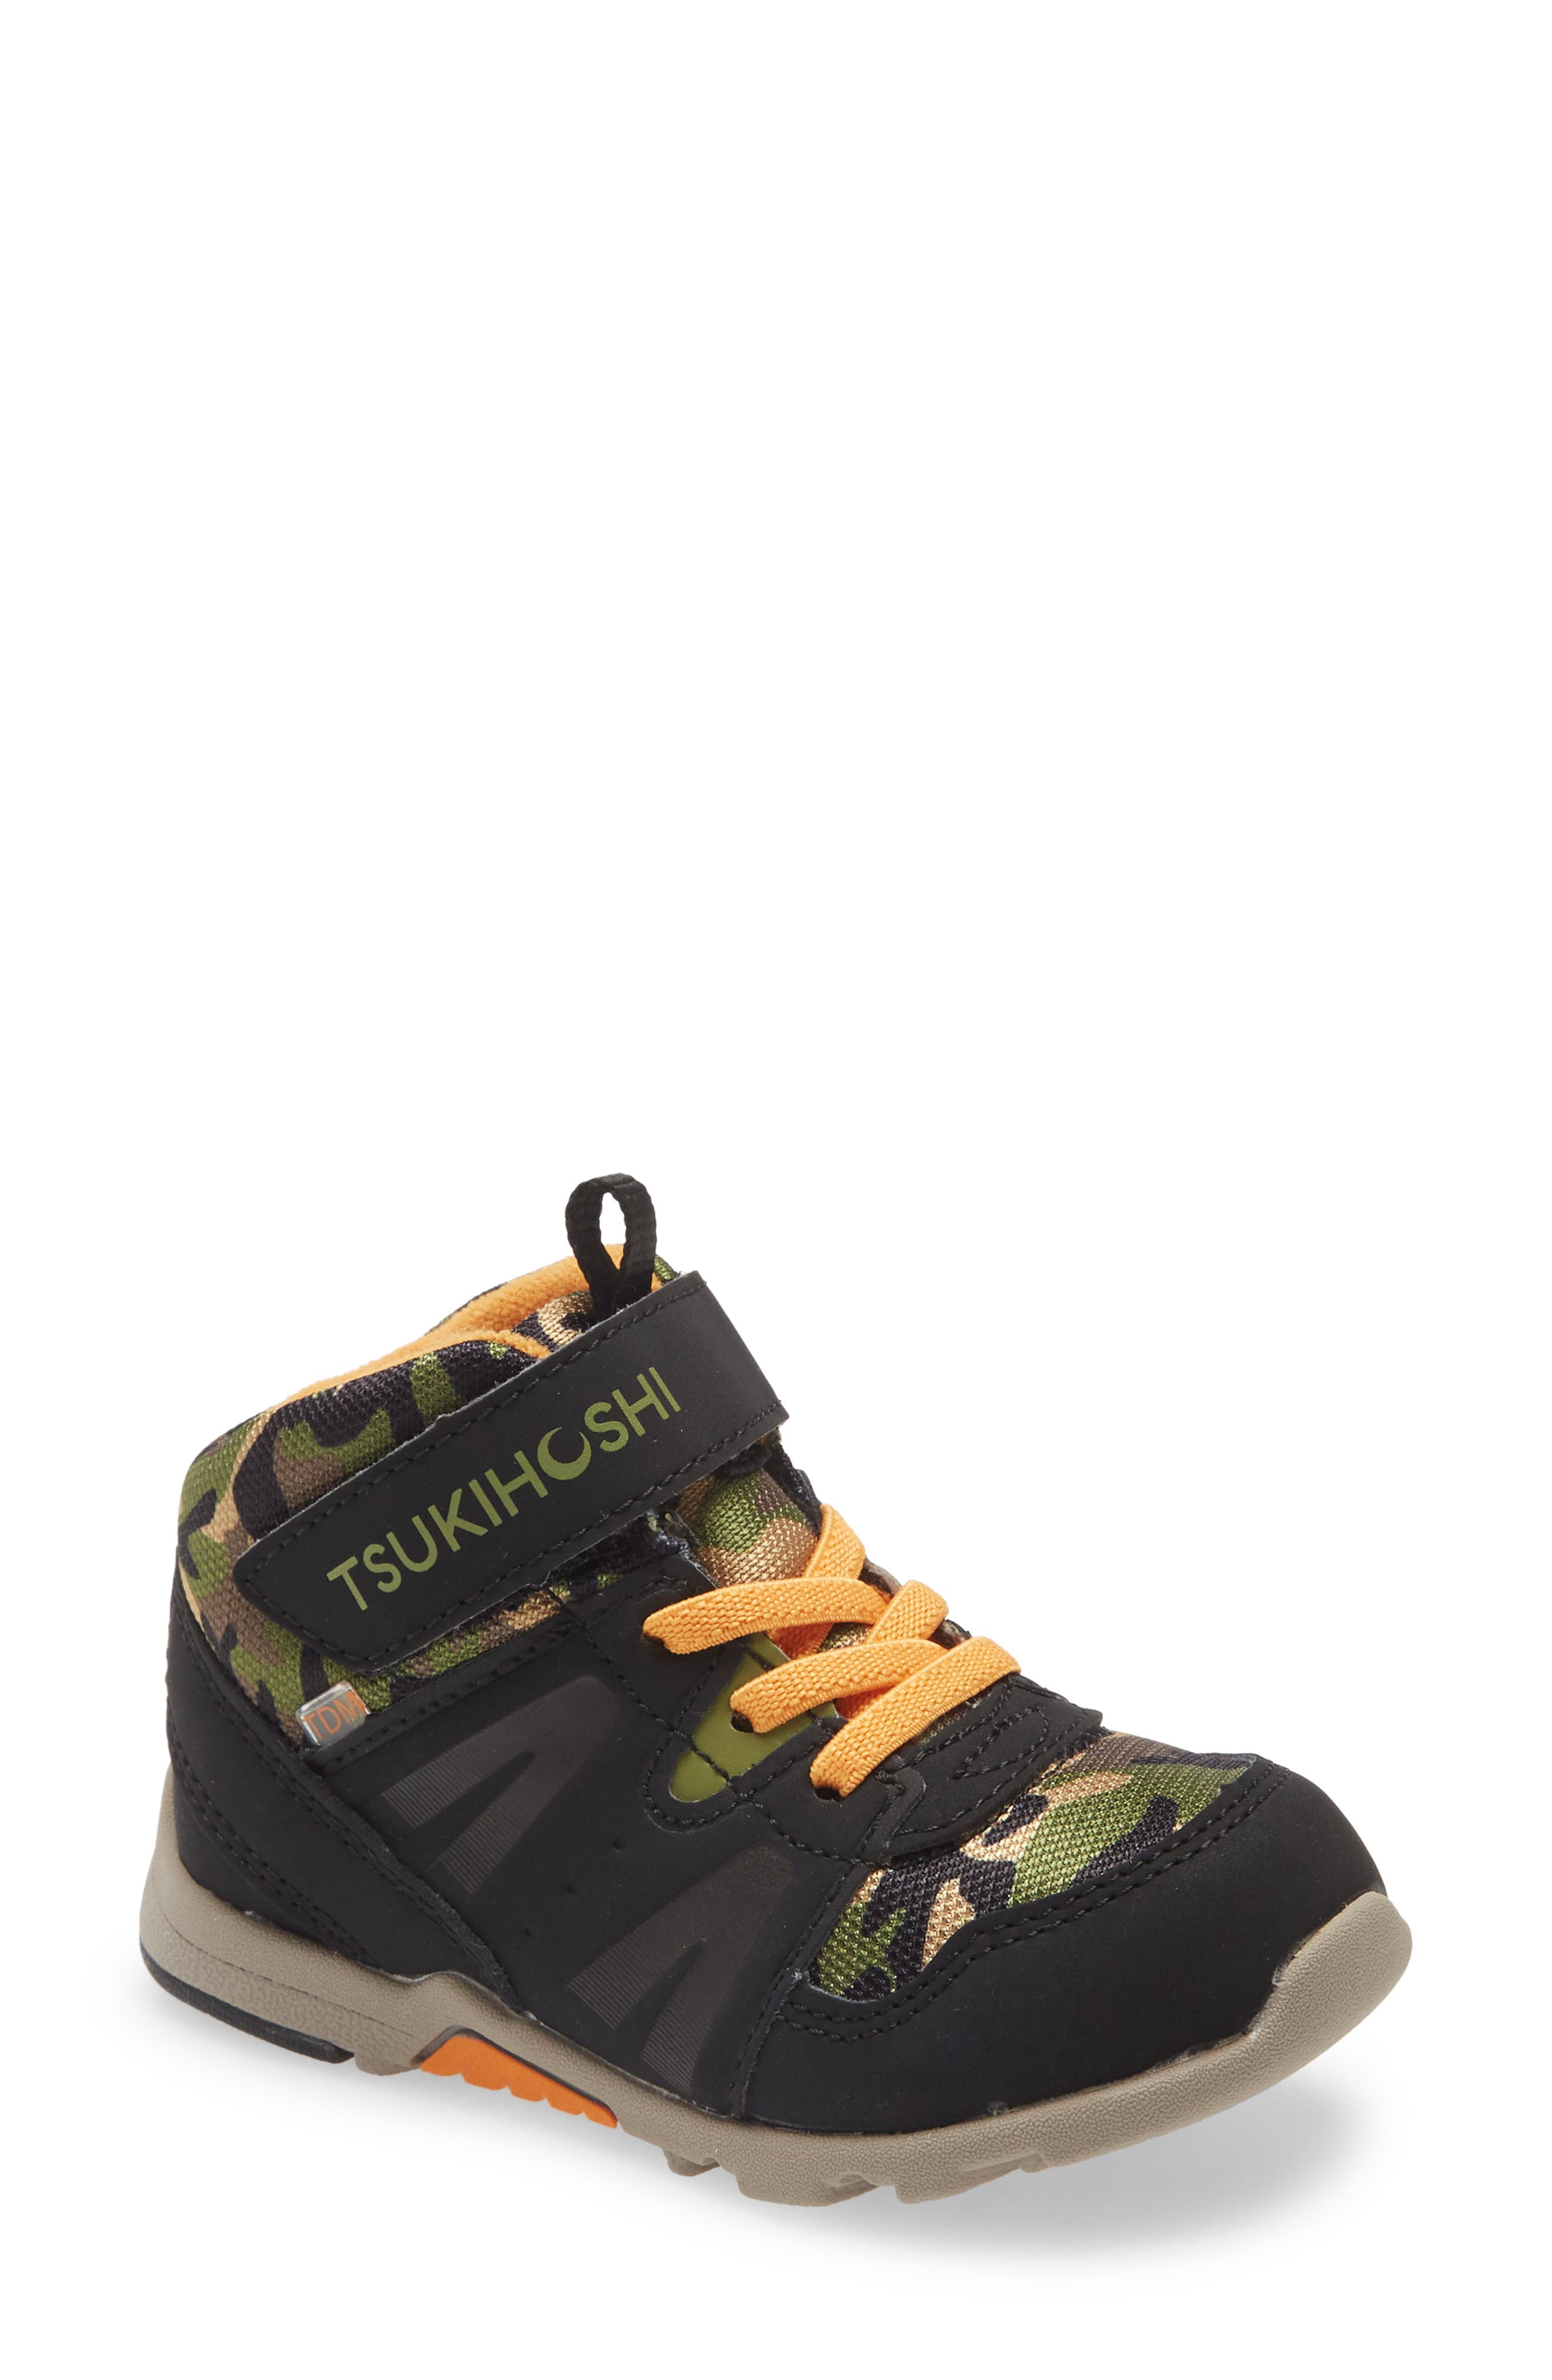 Sturdy, sporty and impervious to water, this machine-washable kids\\\' sneaker boot pairs a rugged camo upper with lightweight, barefoot comfort. Elastic laces and a hook-and-loop bridge strap make it easy to put on and take off, while a molded heel cup and a grippy rubber tread provide stability and traction in wet or dry conditions. Style Name: Tsukihoshi Kids\\\' Hike Waterproof Sneaker Boot (Little Kid & Big Kid). Style Number: 6145535. Available